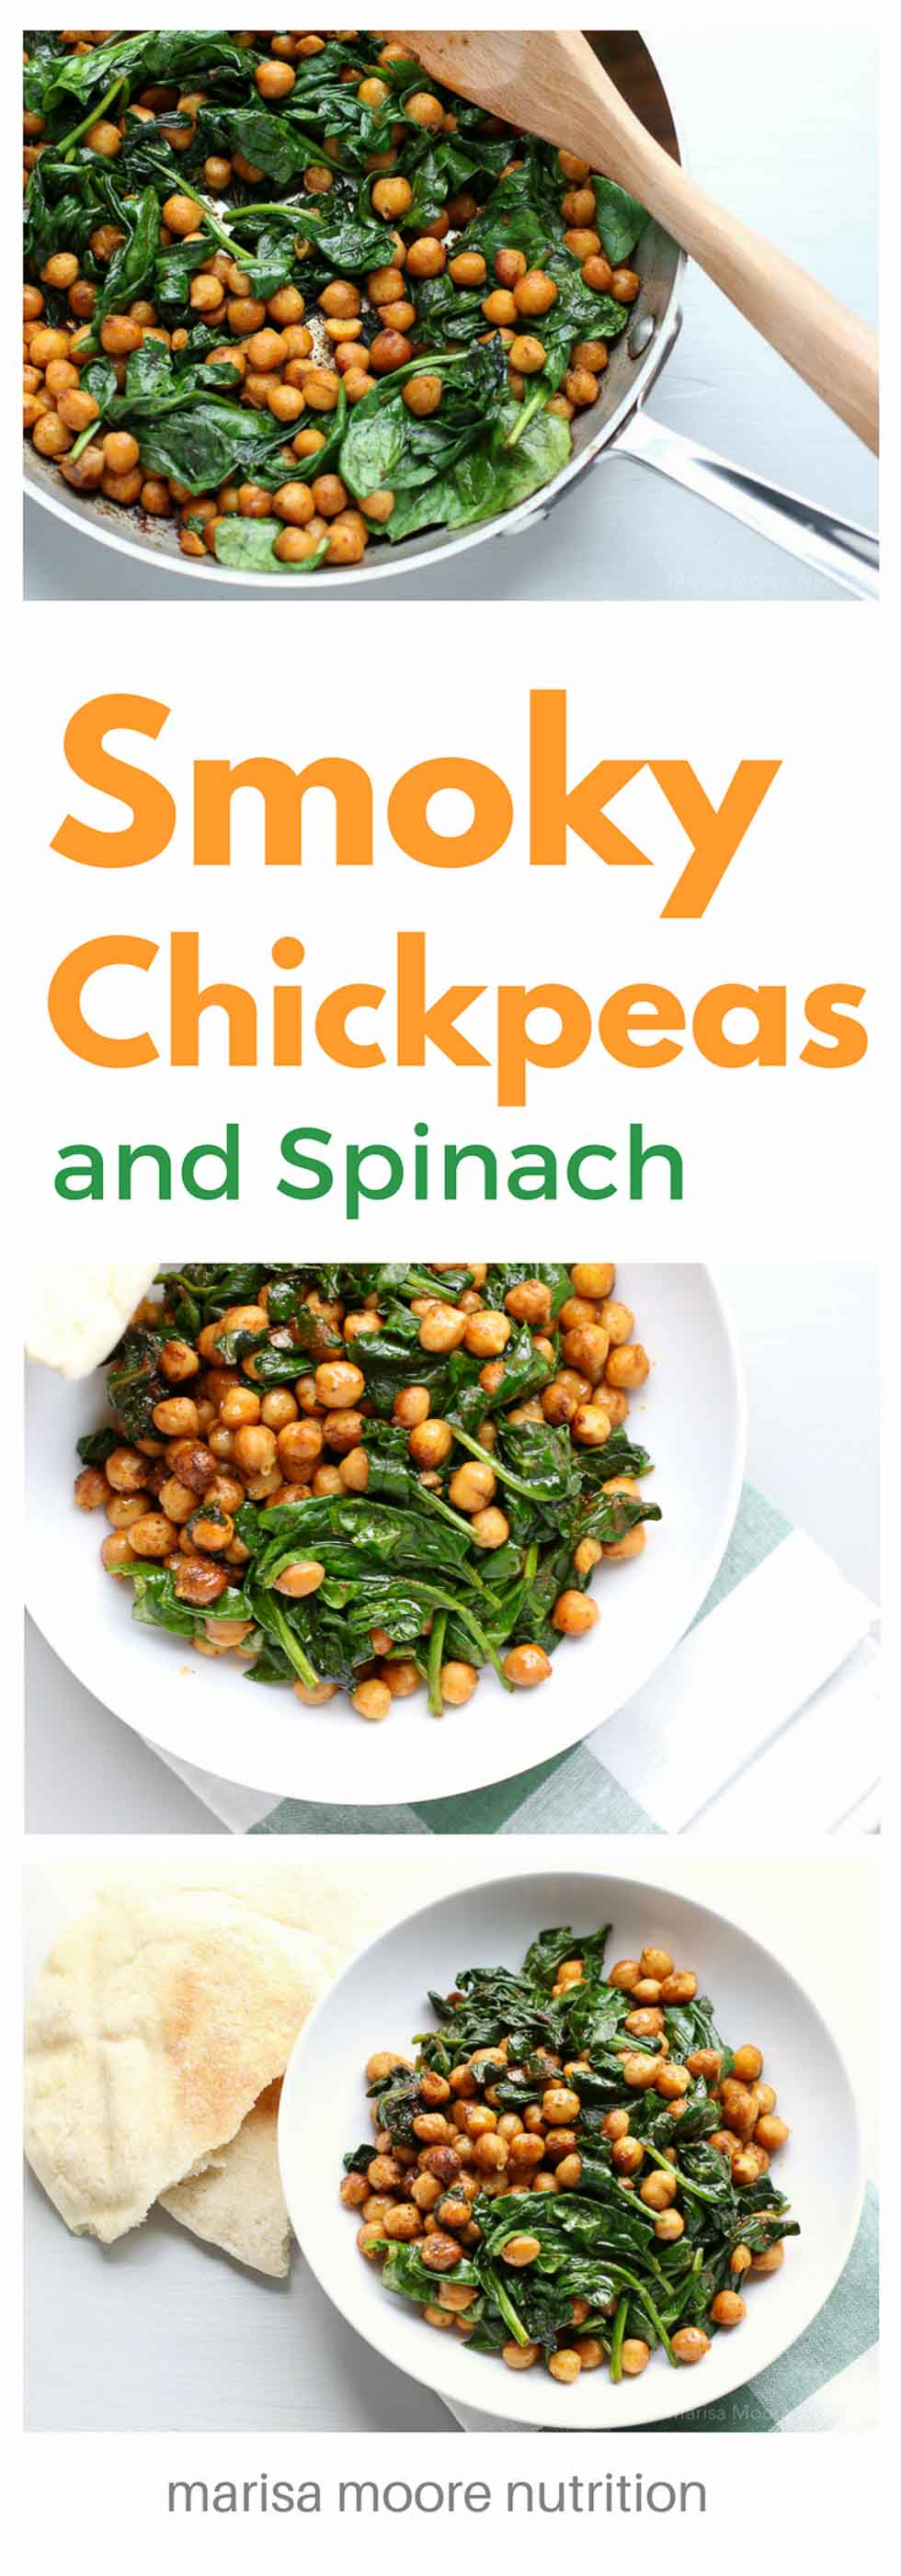 Smoky Chickpeas with Spinach - Marisa Moore | Registered Dietitian ...